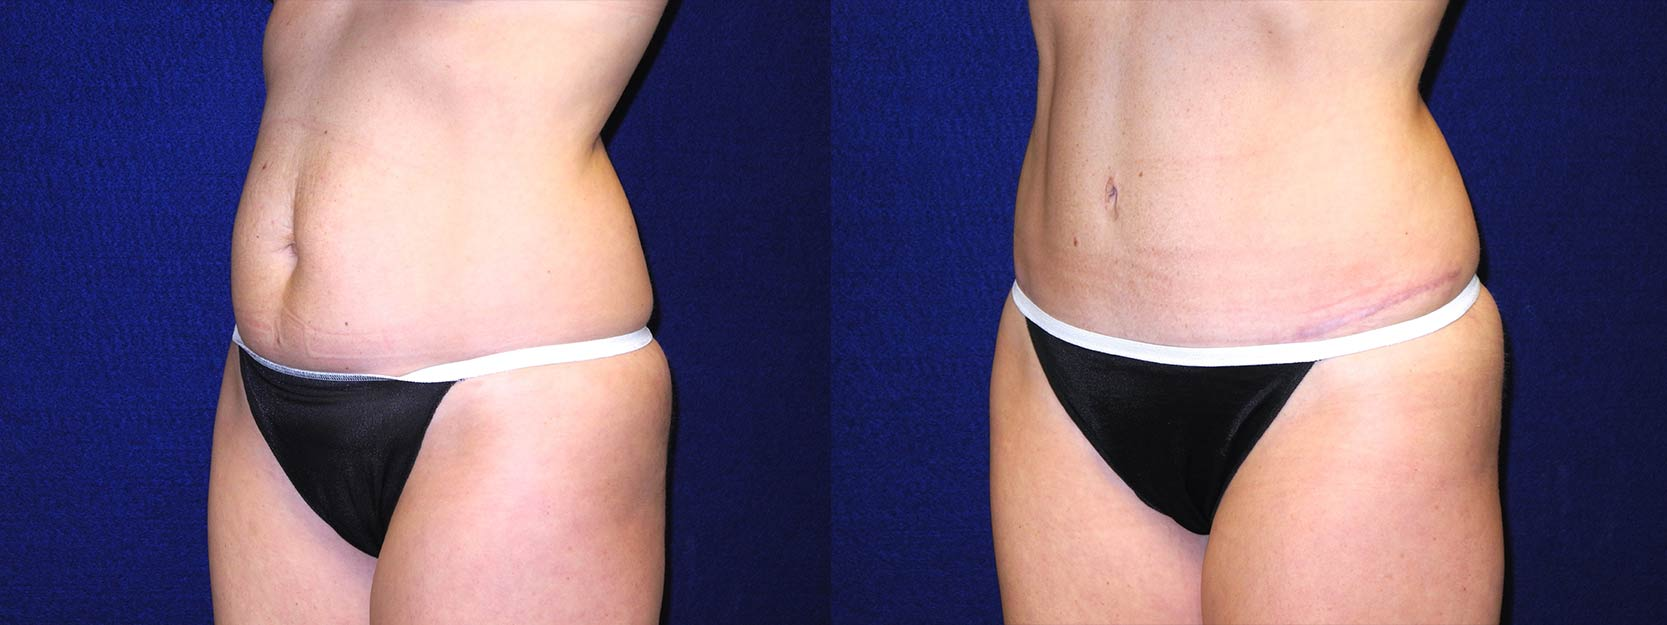 Left 3/4 View - Tummy Tuck After Pregnancy